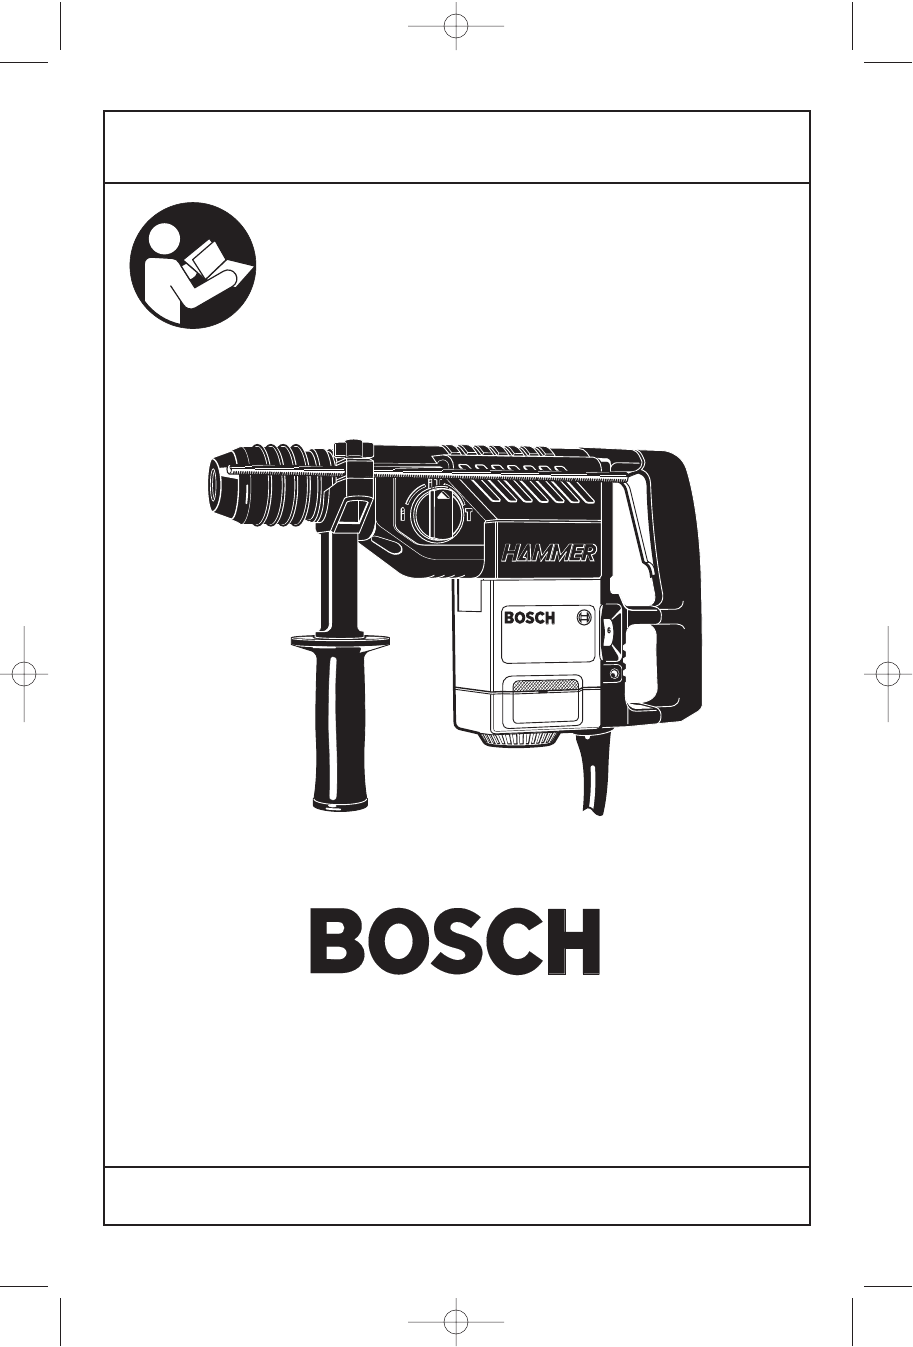 bosch power tools power hammer 11222evsg user guide Philips TV User Manual Philips Universal Remote User Manual